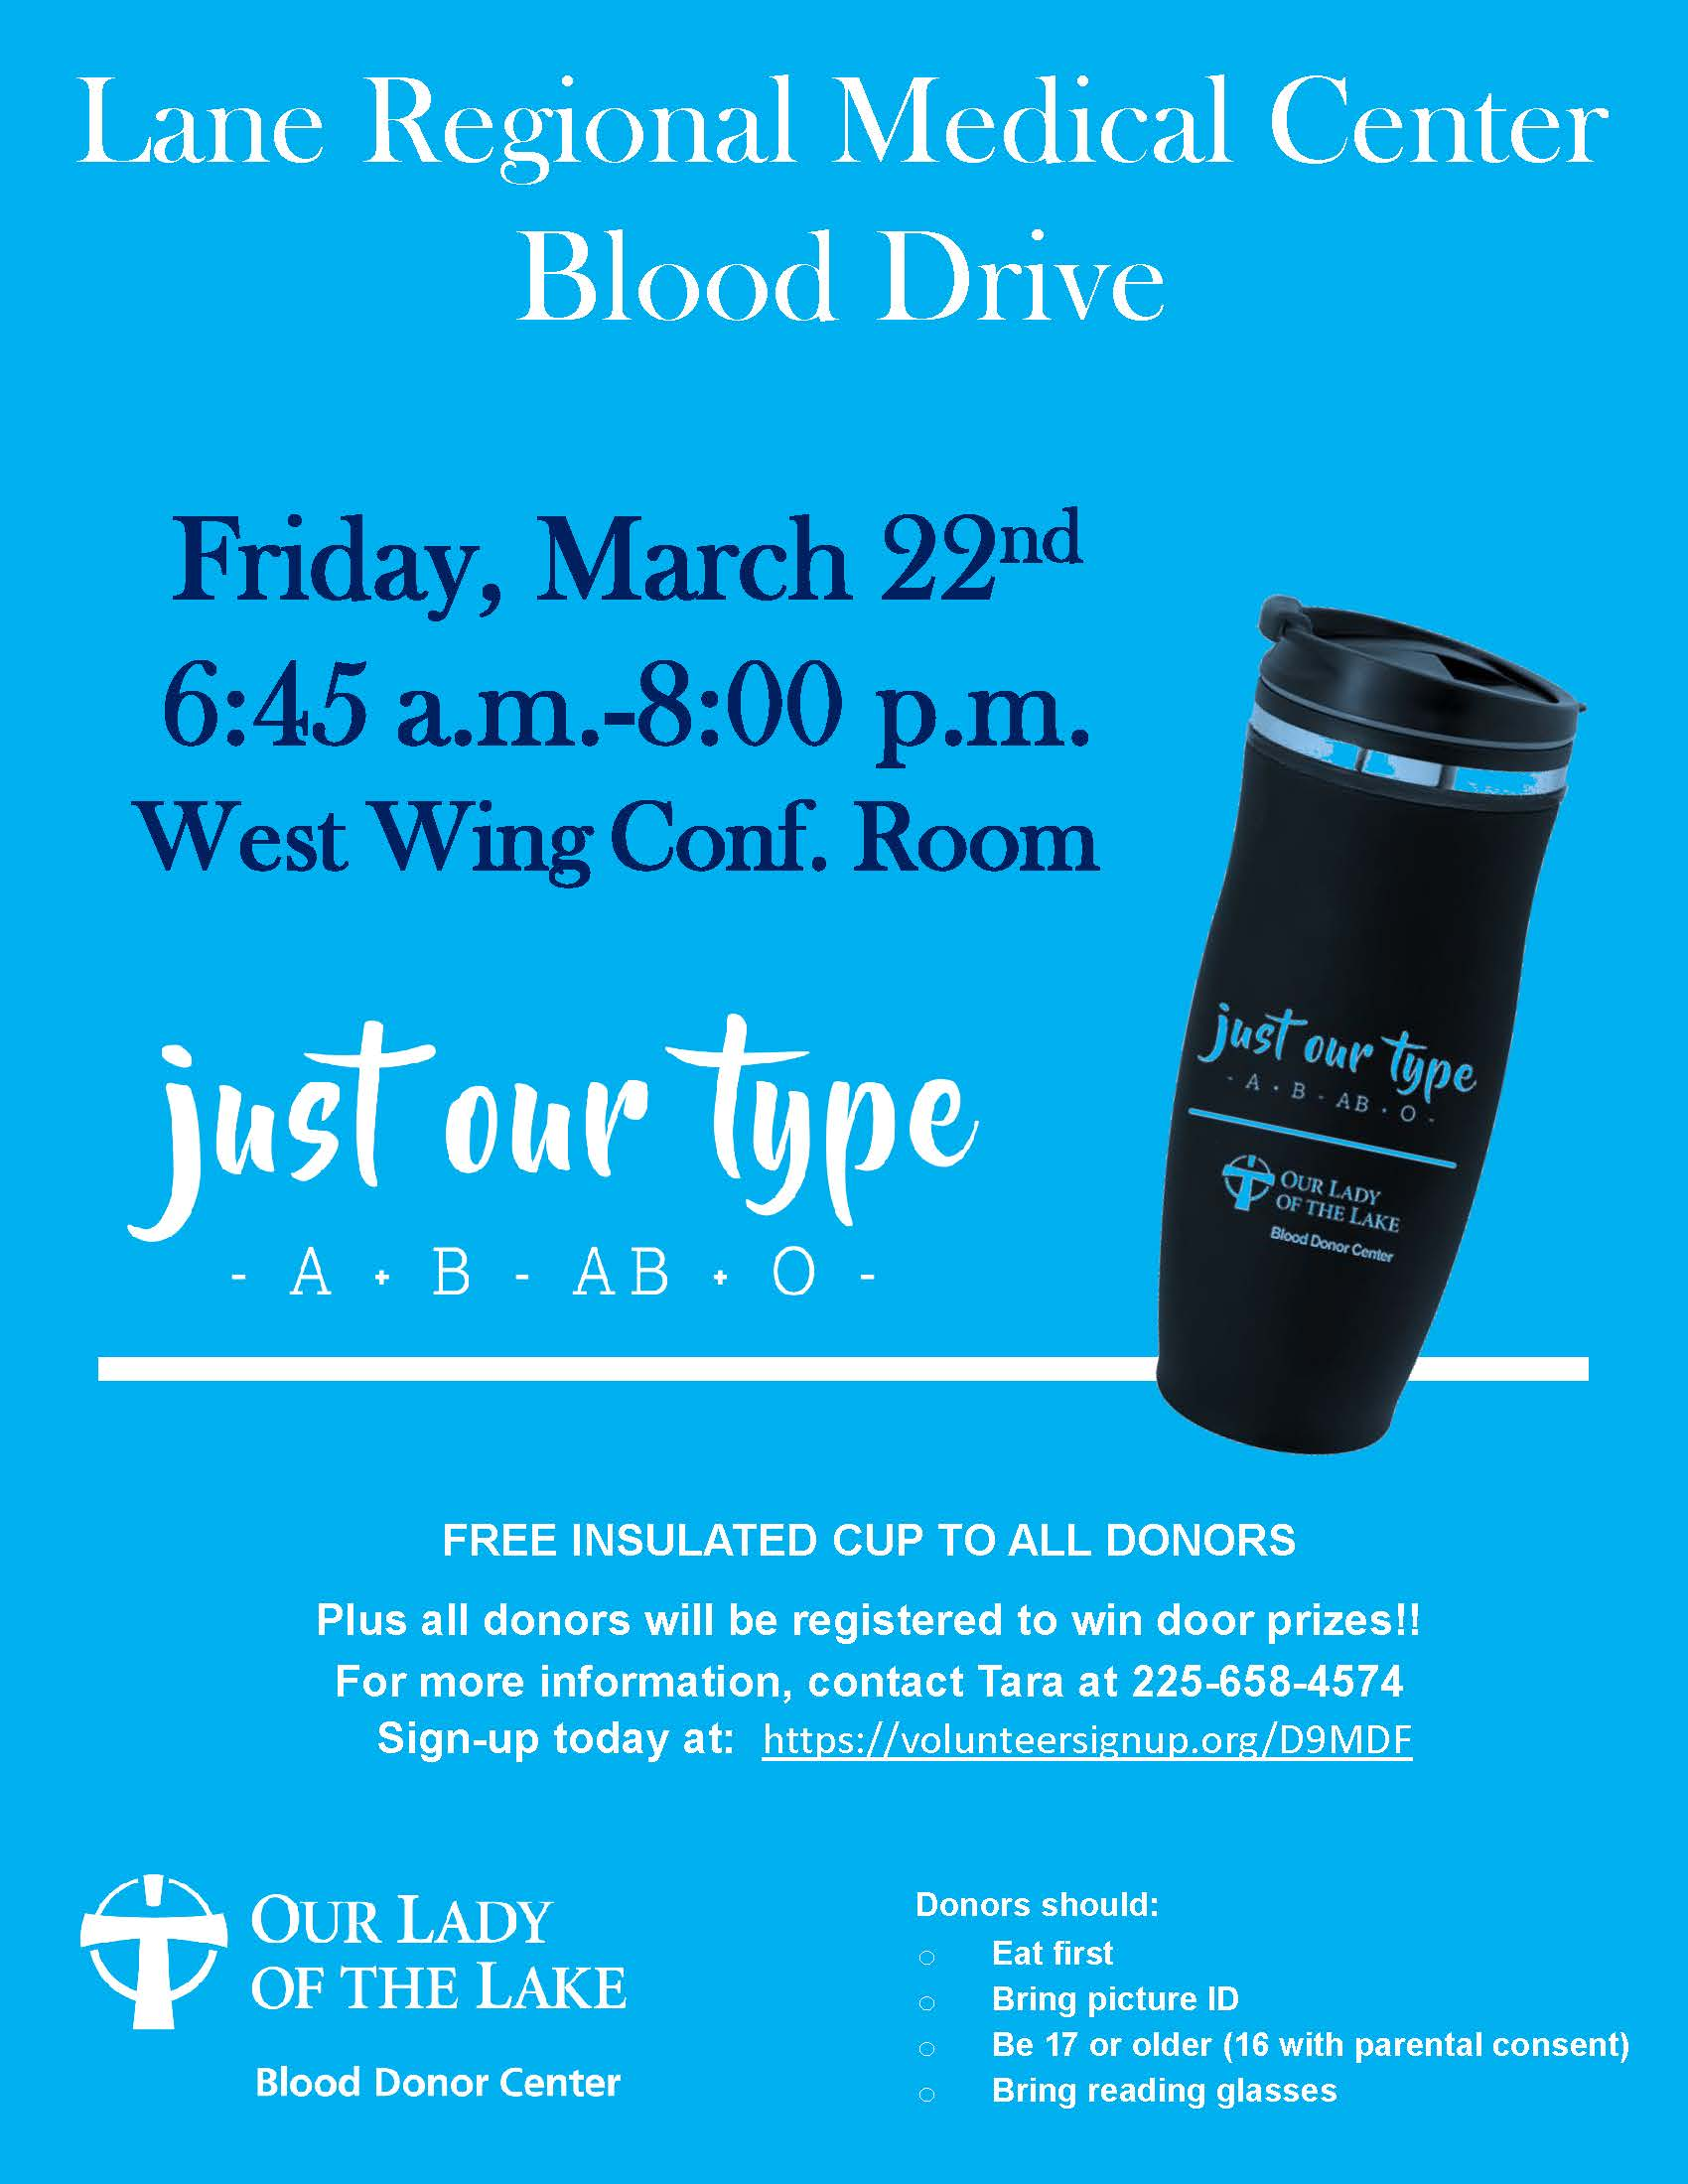 Blood Drive at Lane RMC Friday March 22nd